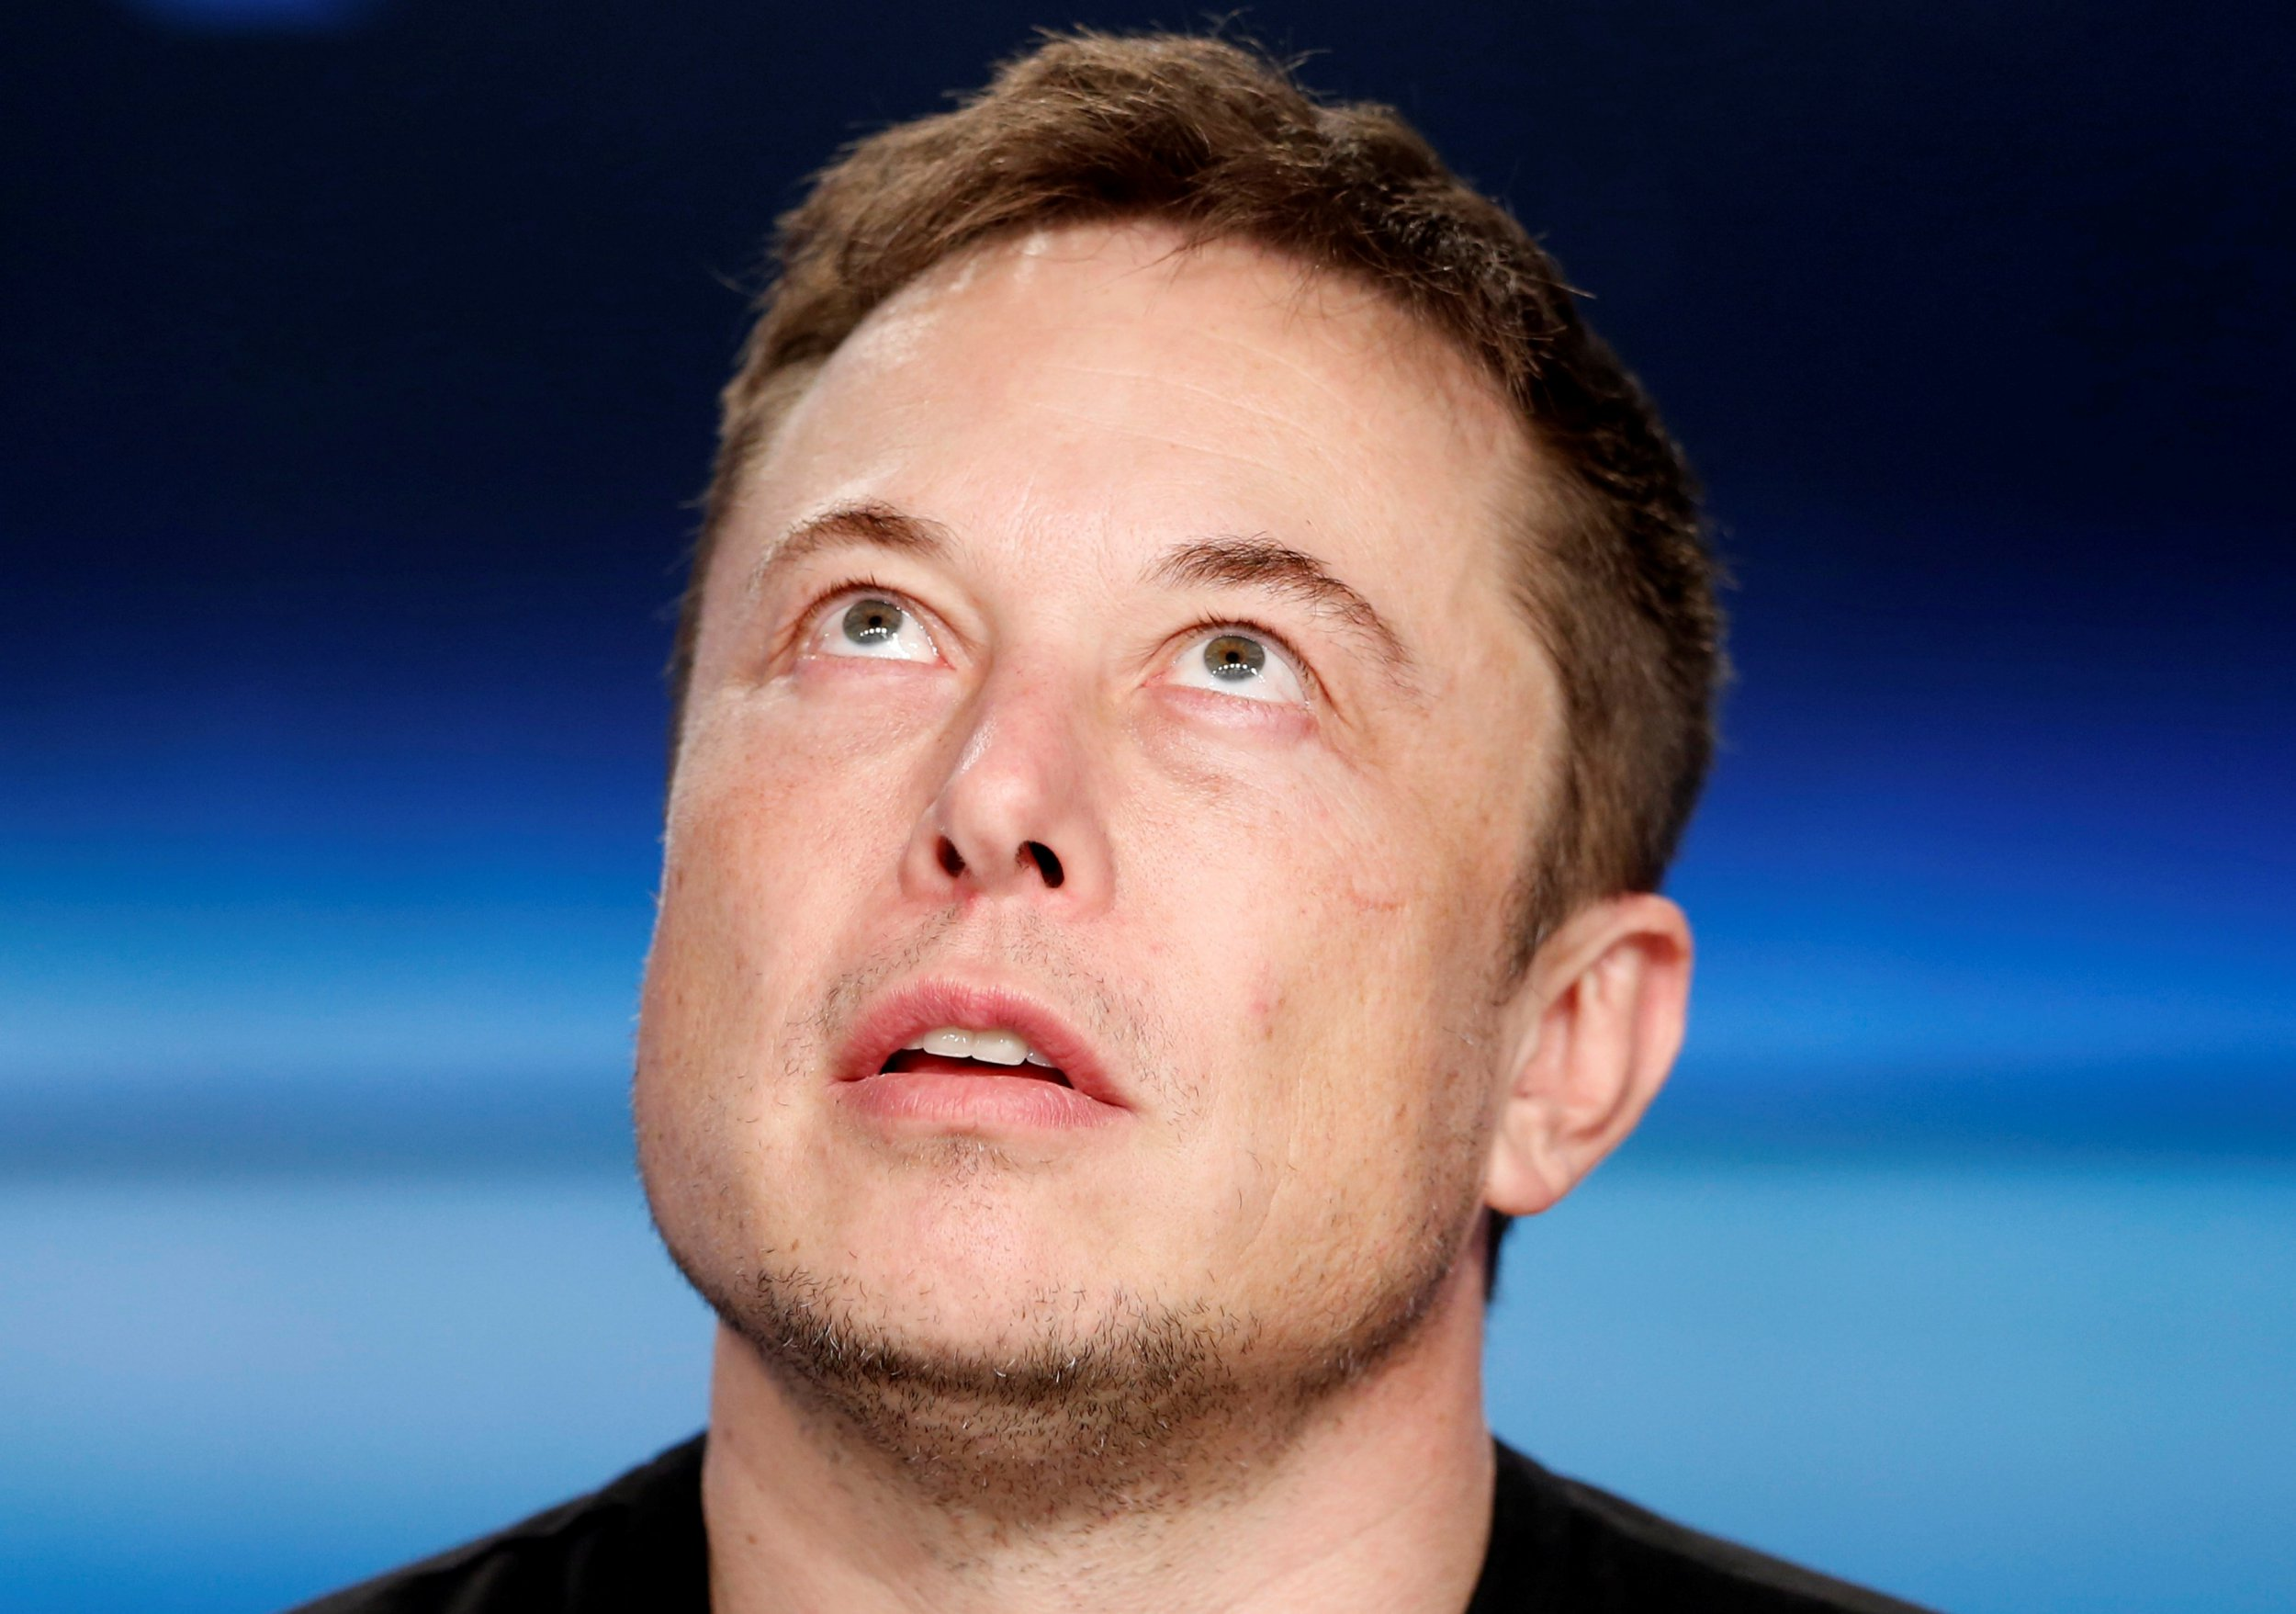 FILE PHOTO: SpaceX founder Elon Musk pauses at a press conference following the first launch of a SpaceX Falcon Heavy rocket at the Kennedy Space Center in Cape Canaveral, Florida, U.S., February 6, 2018. REUTERS/Joe Skipper/File Photo